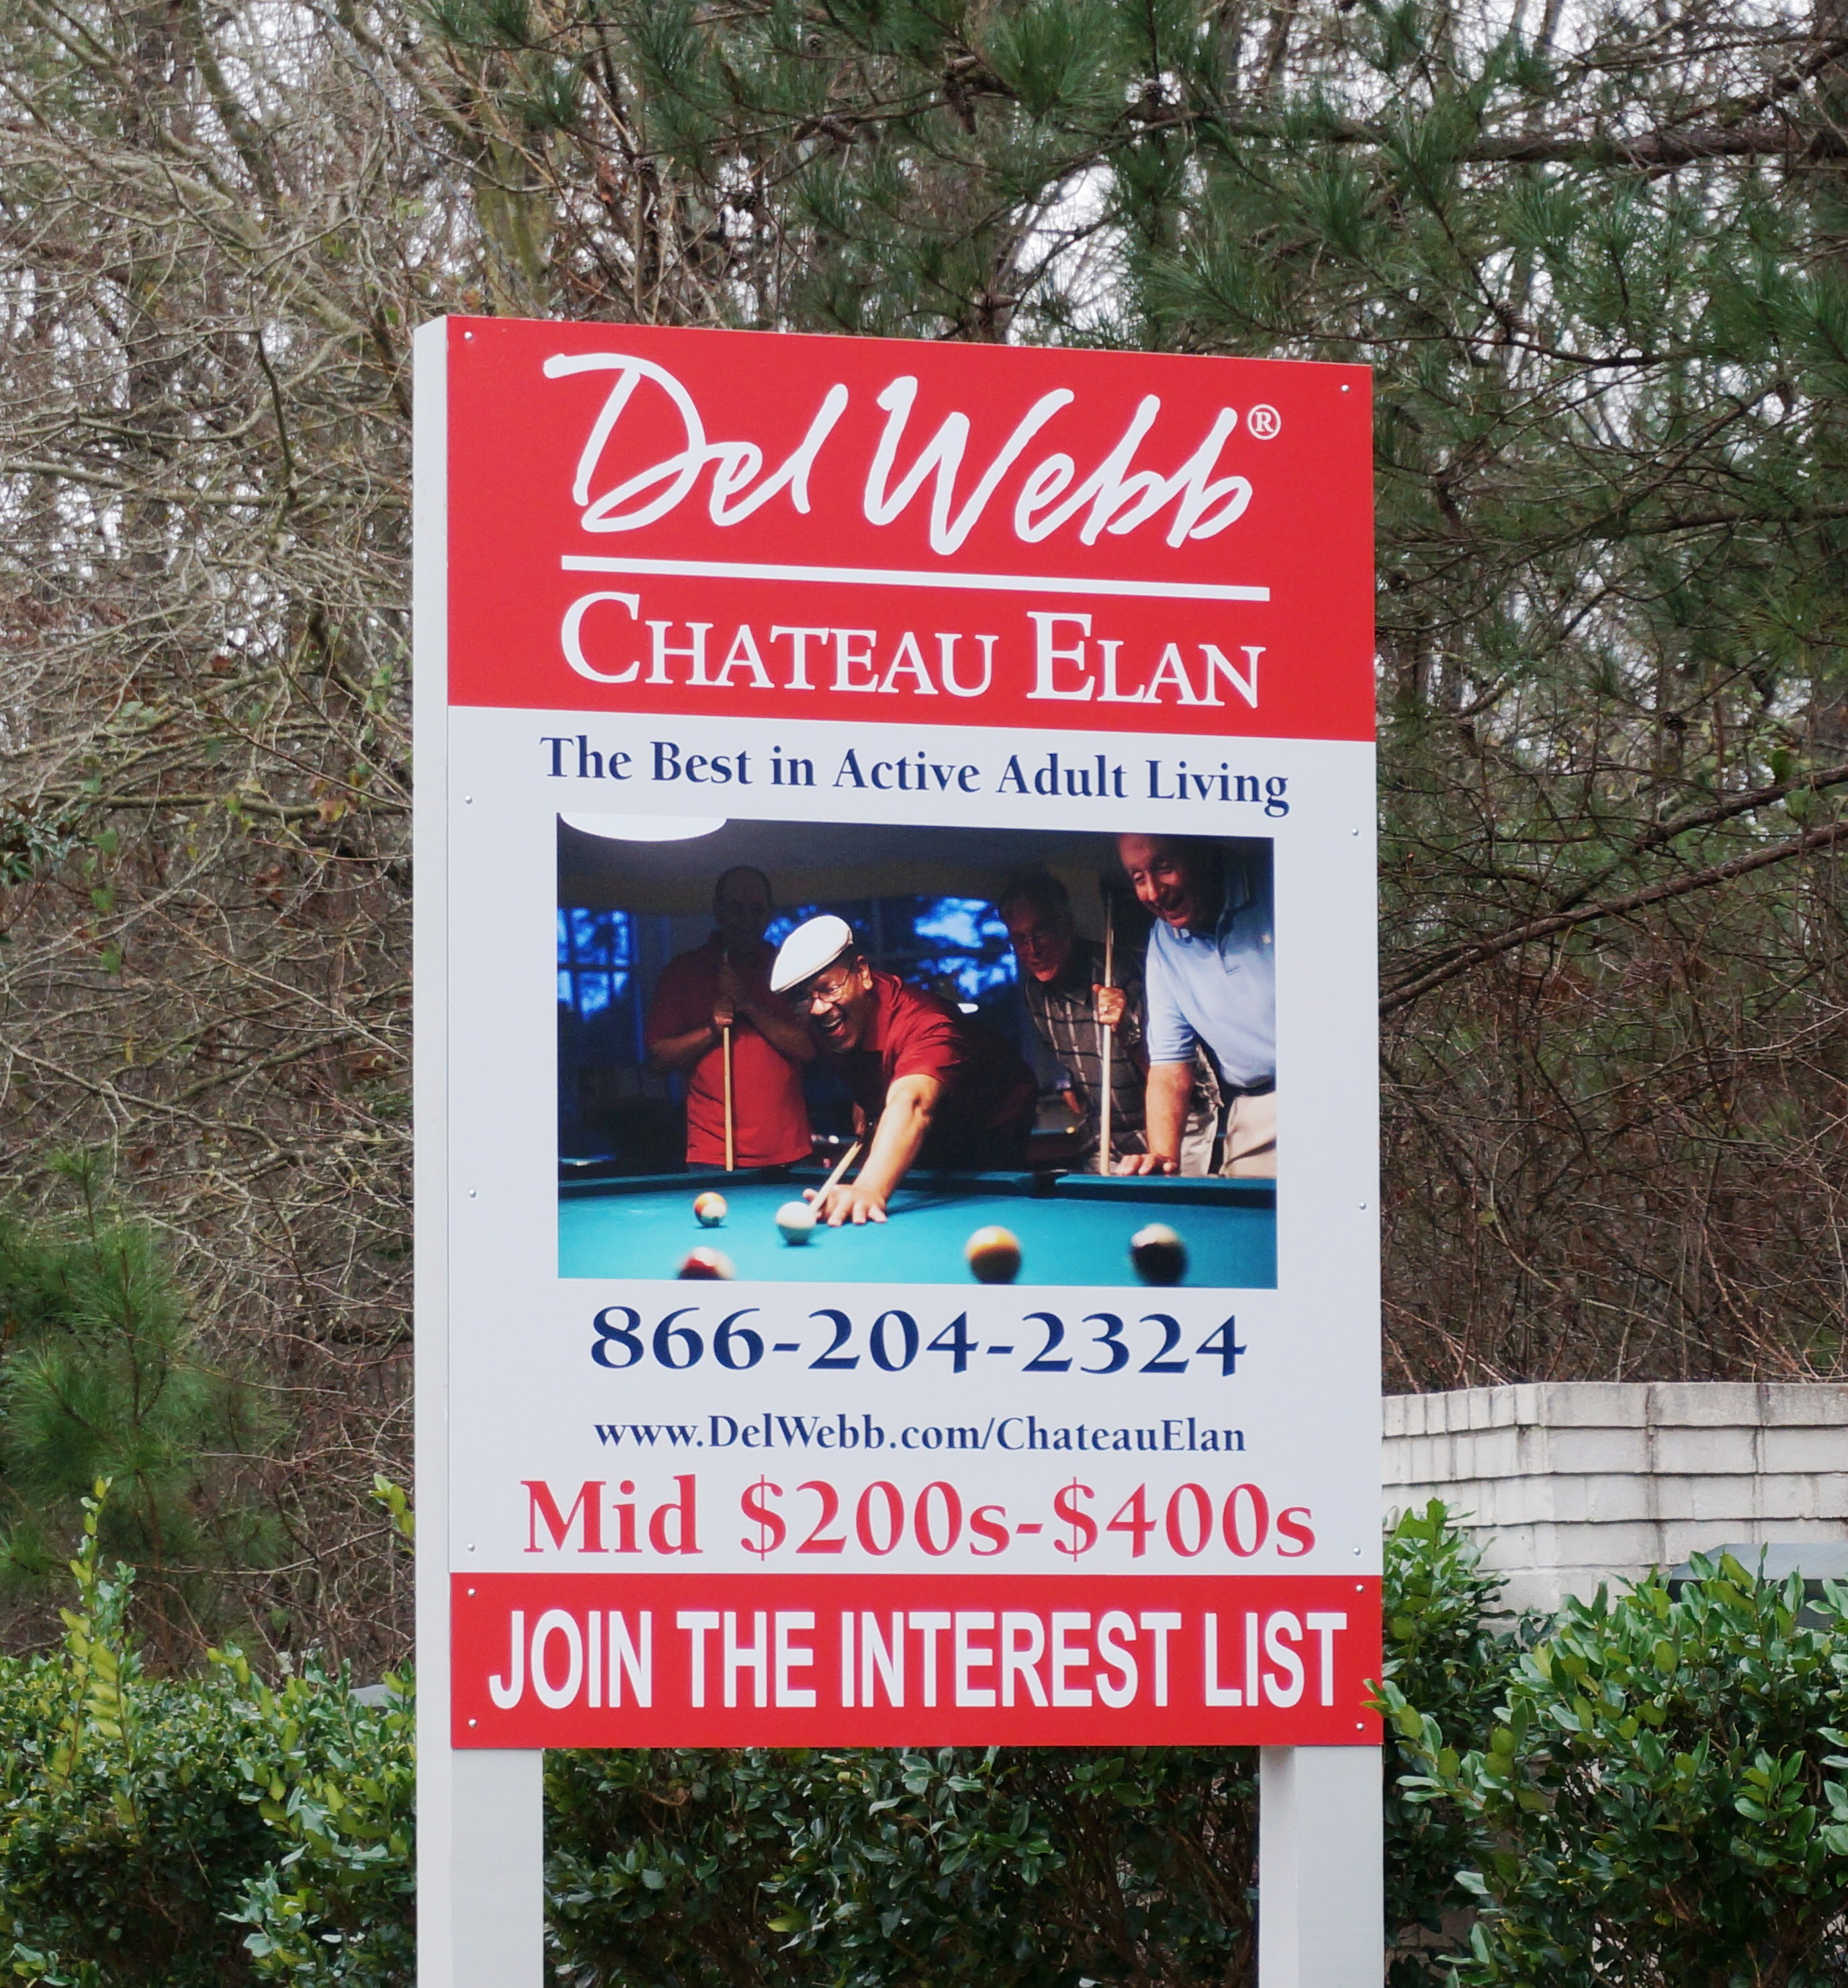 Del Webb at Chateau Elan